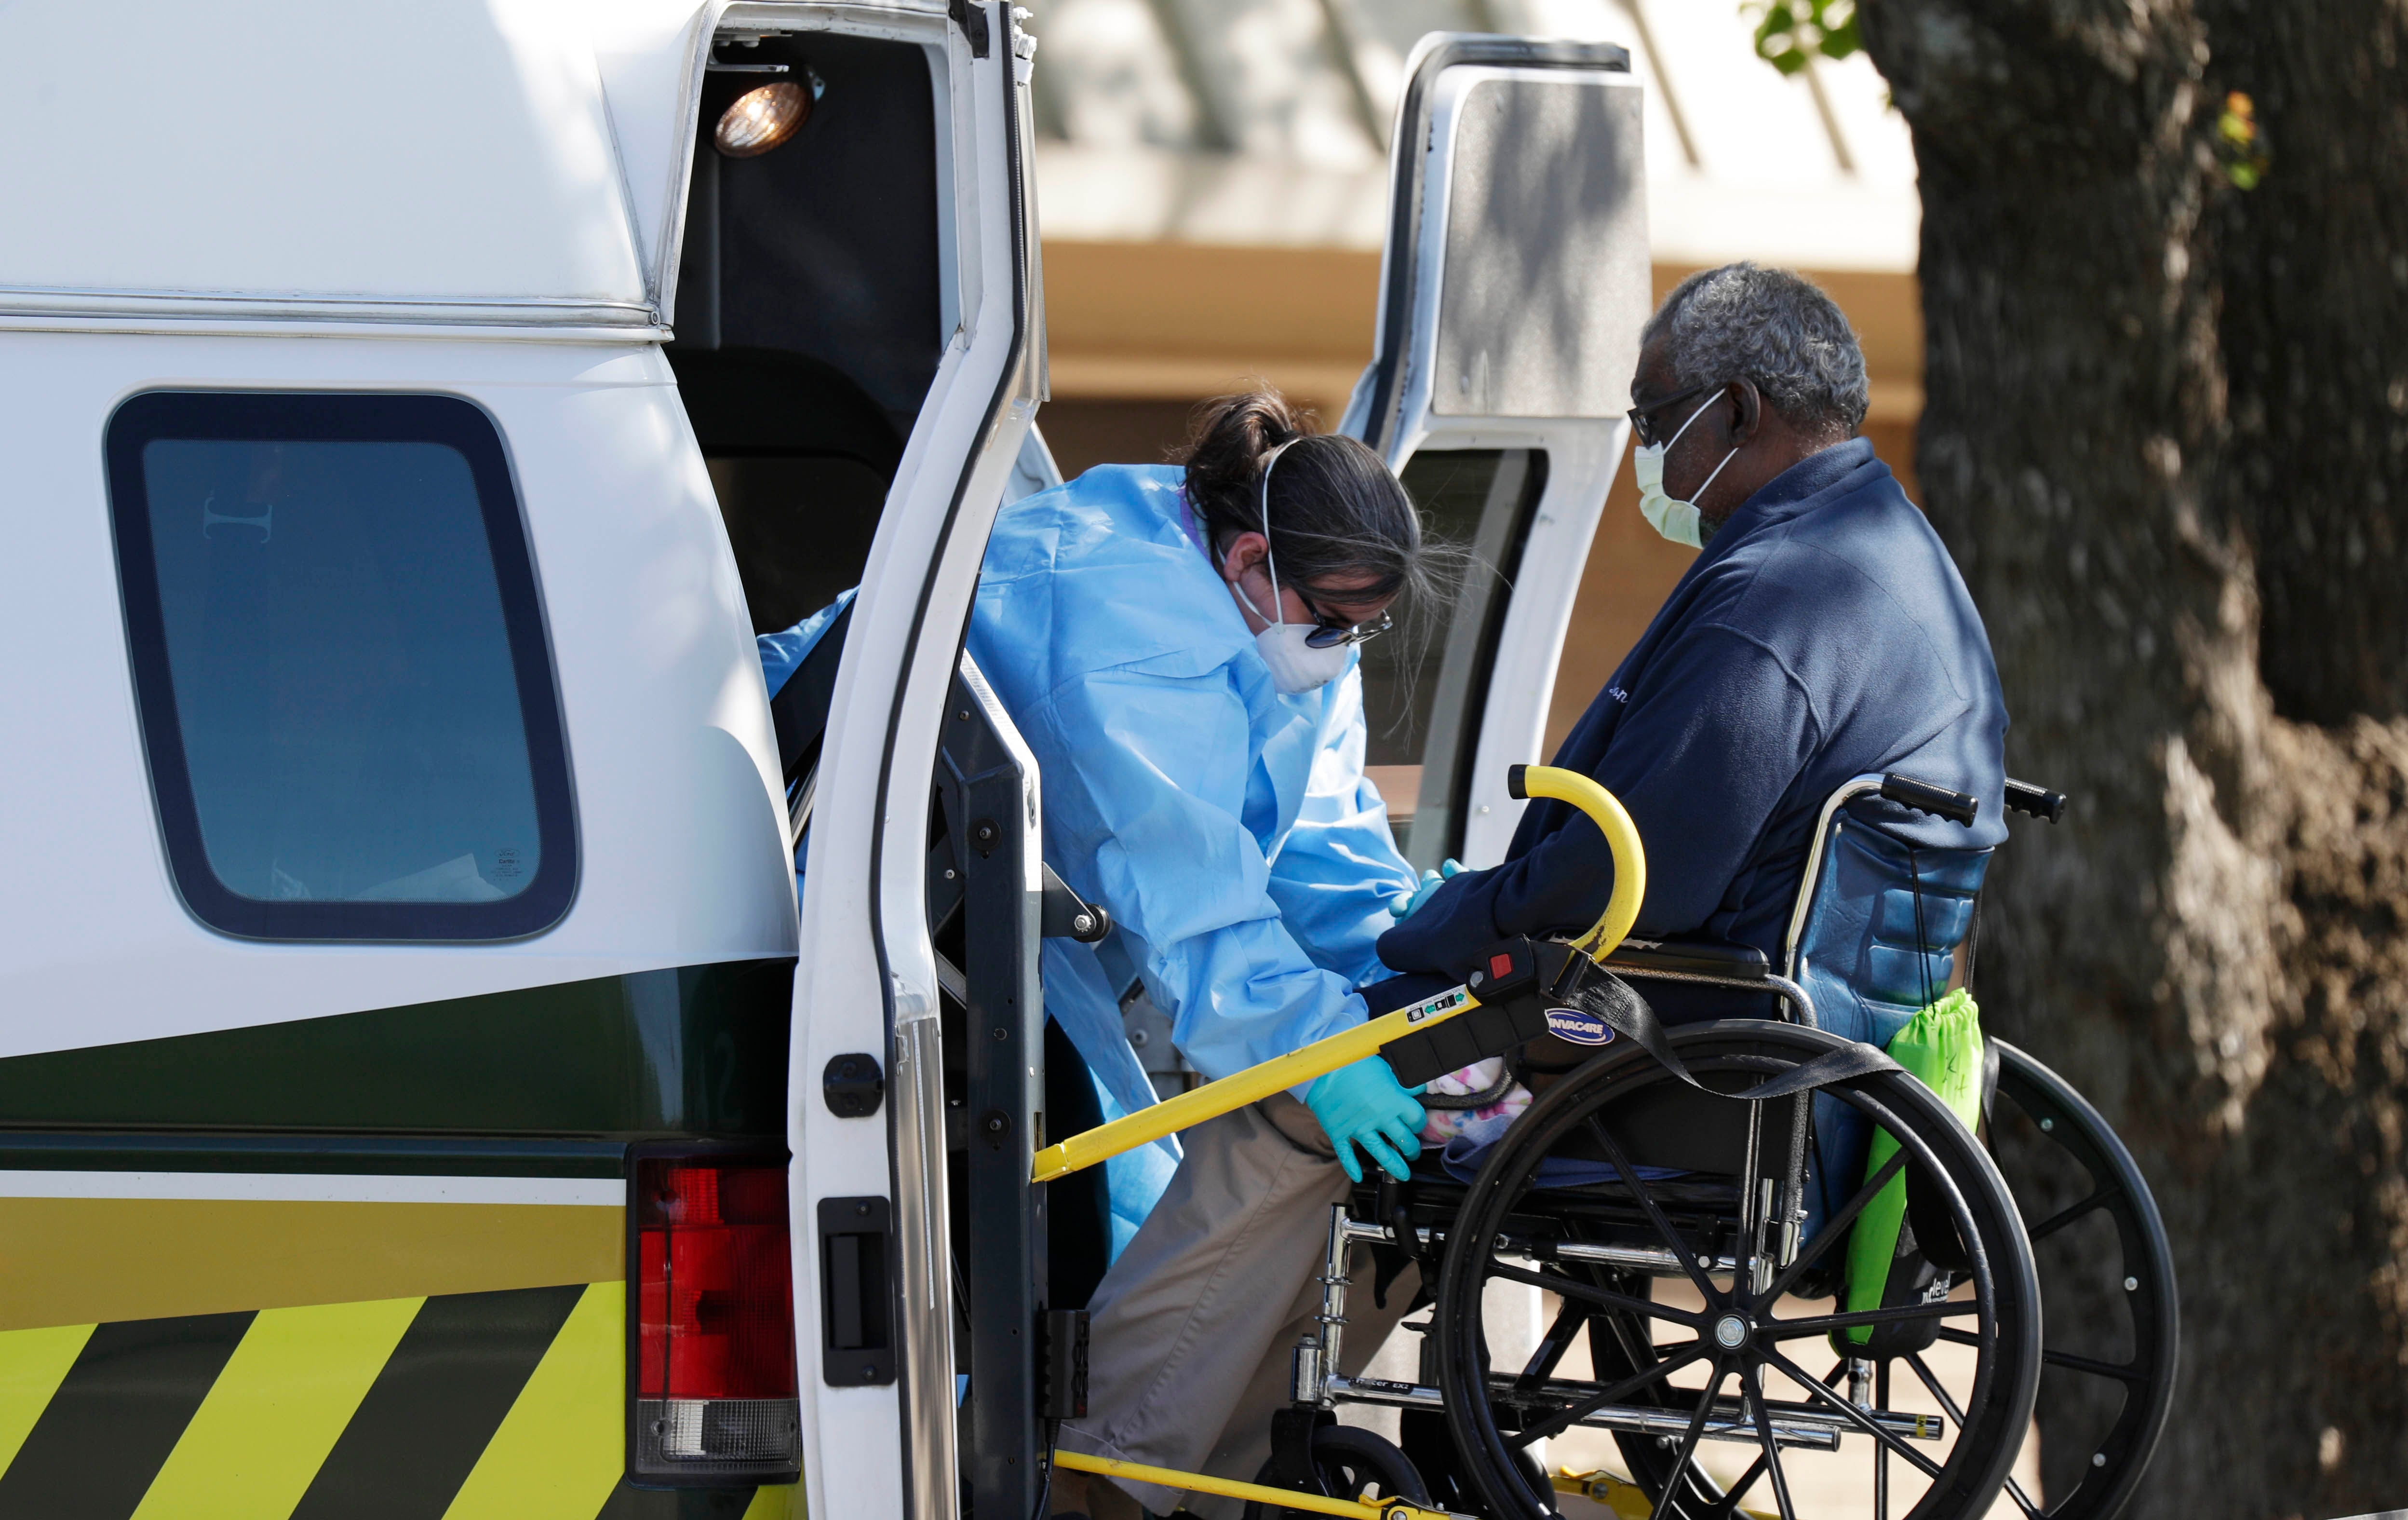 A resident of a nursing home is loaded into an ambulance in Texas.